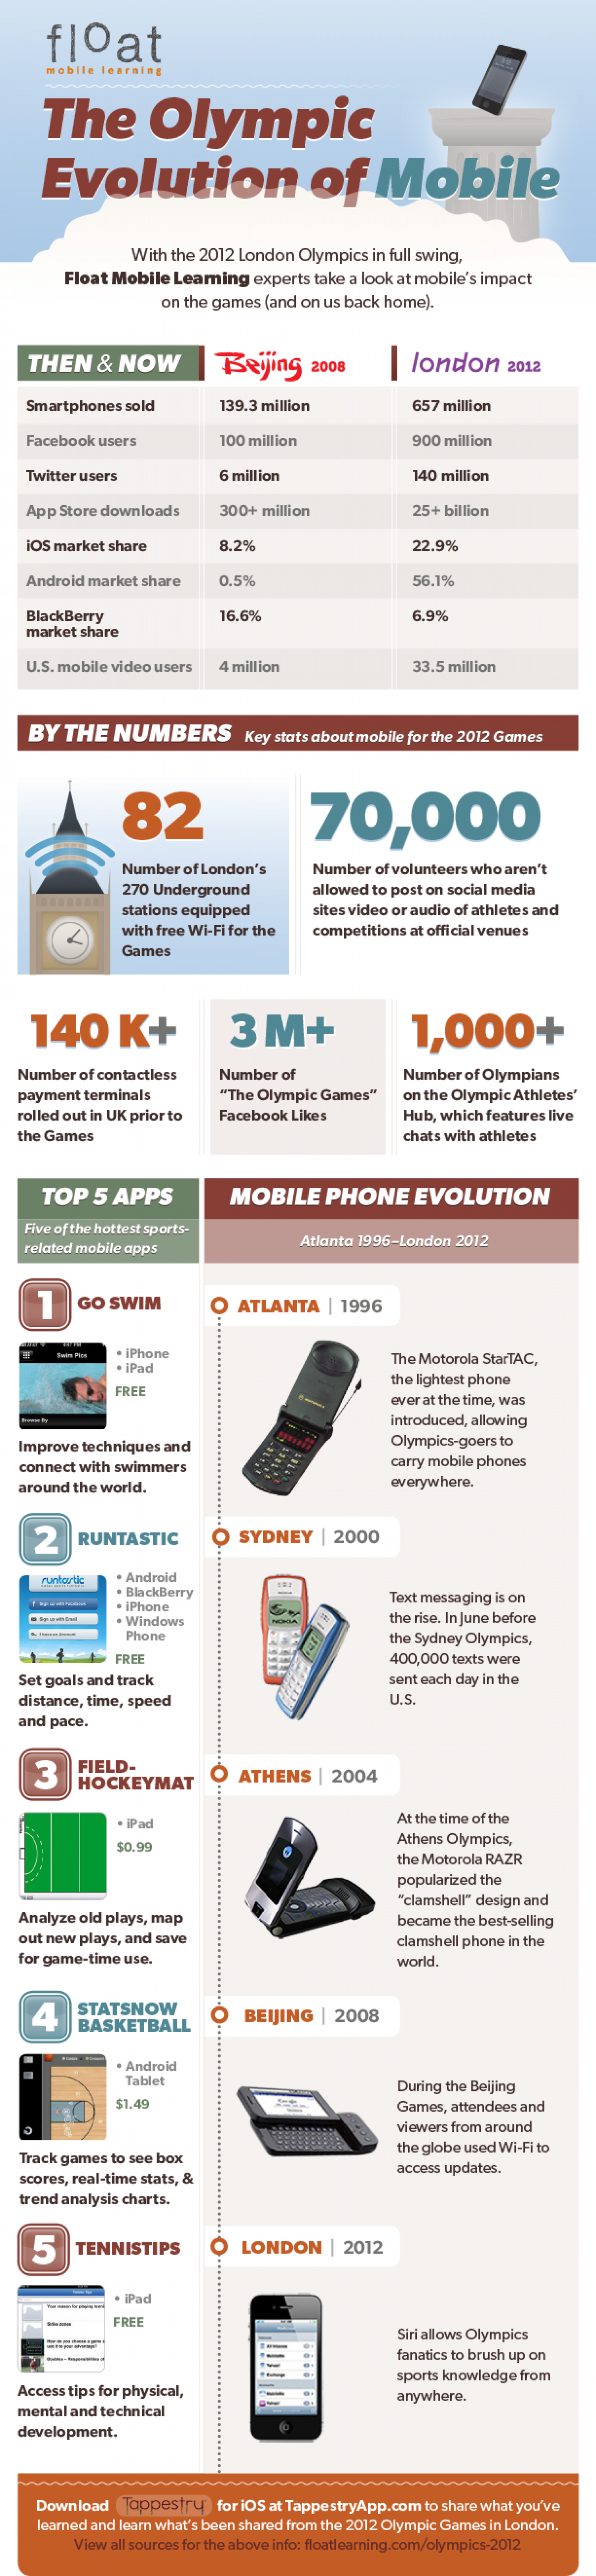 The Olympic Evolution of Mobile Infographic